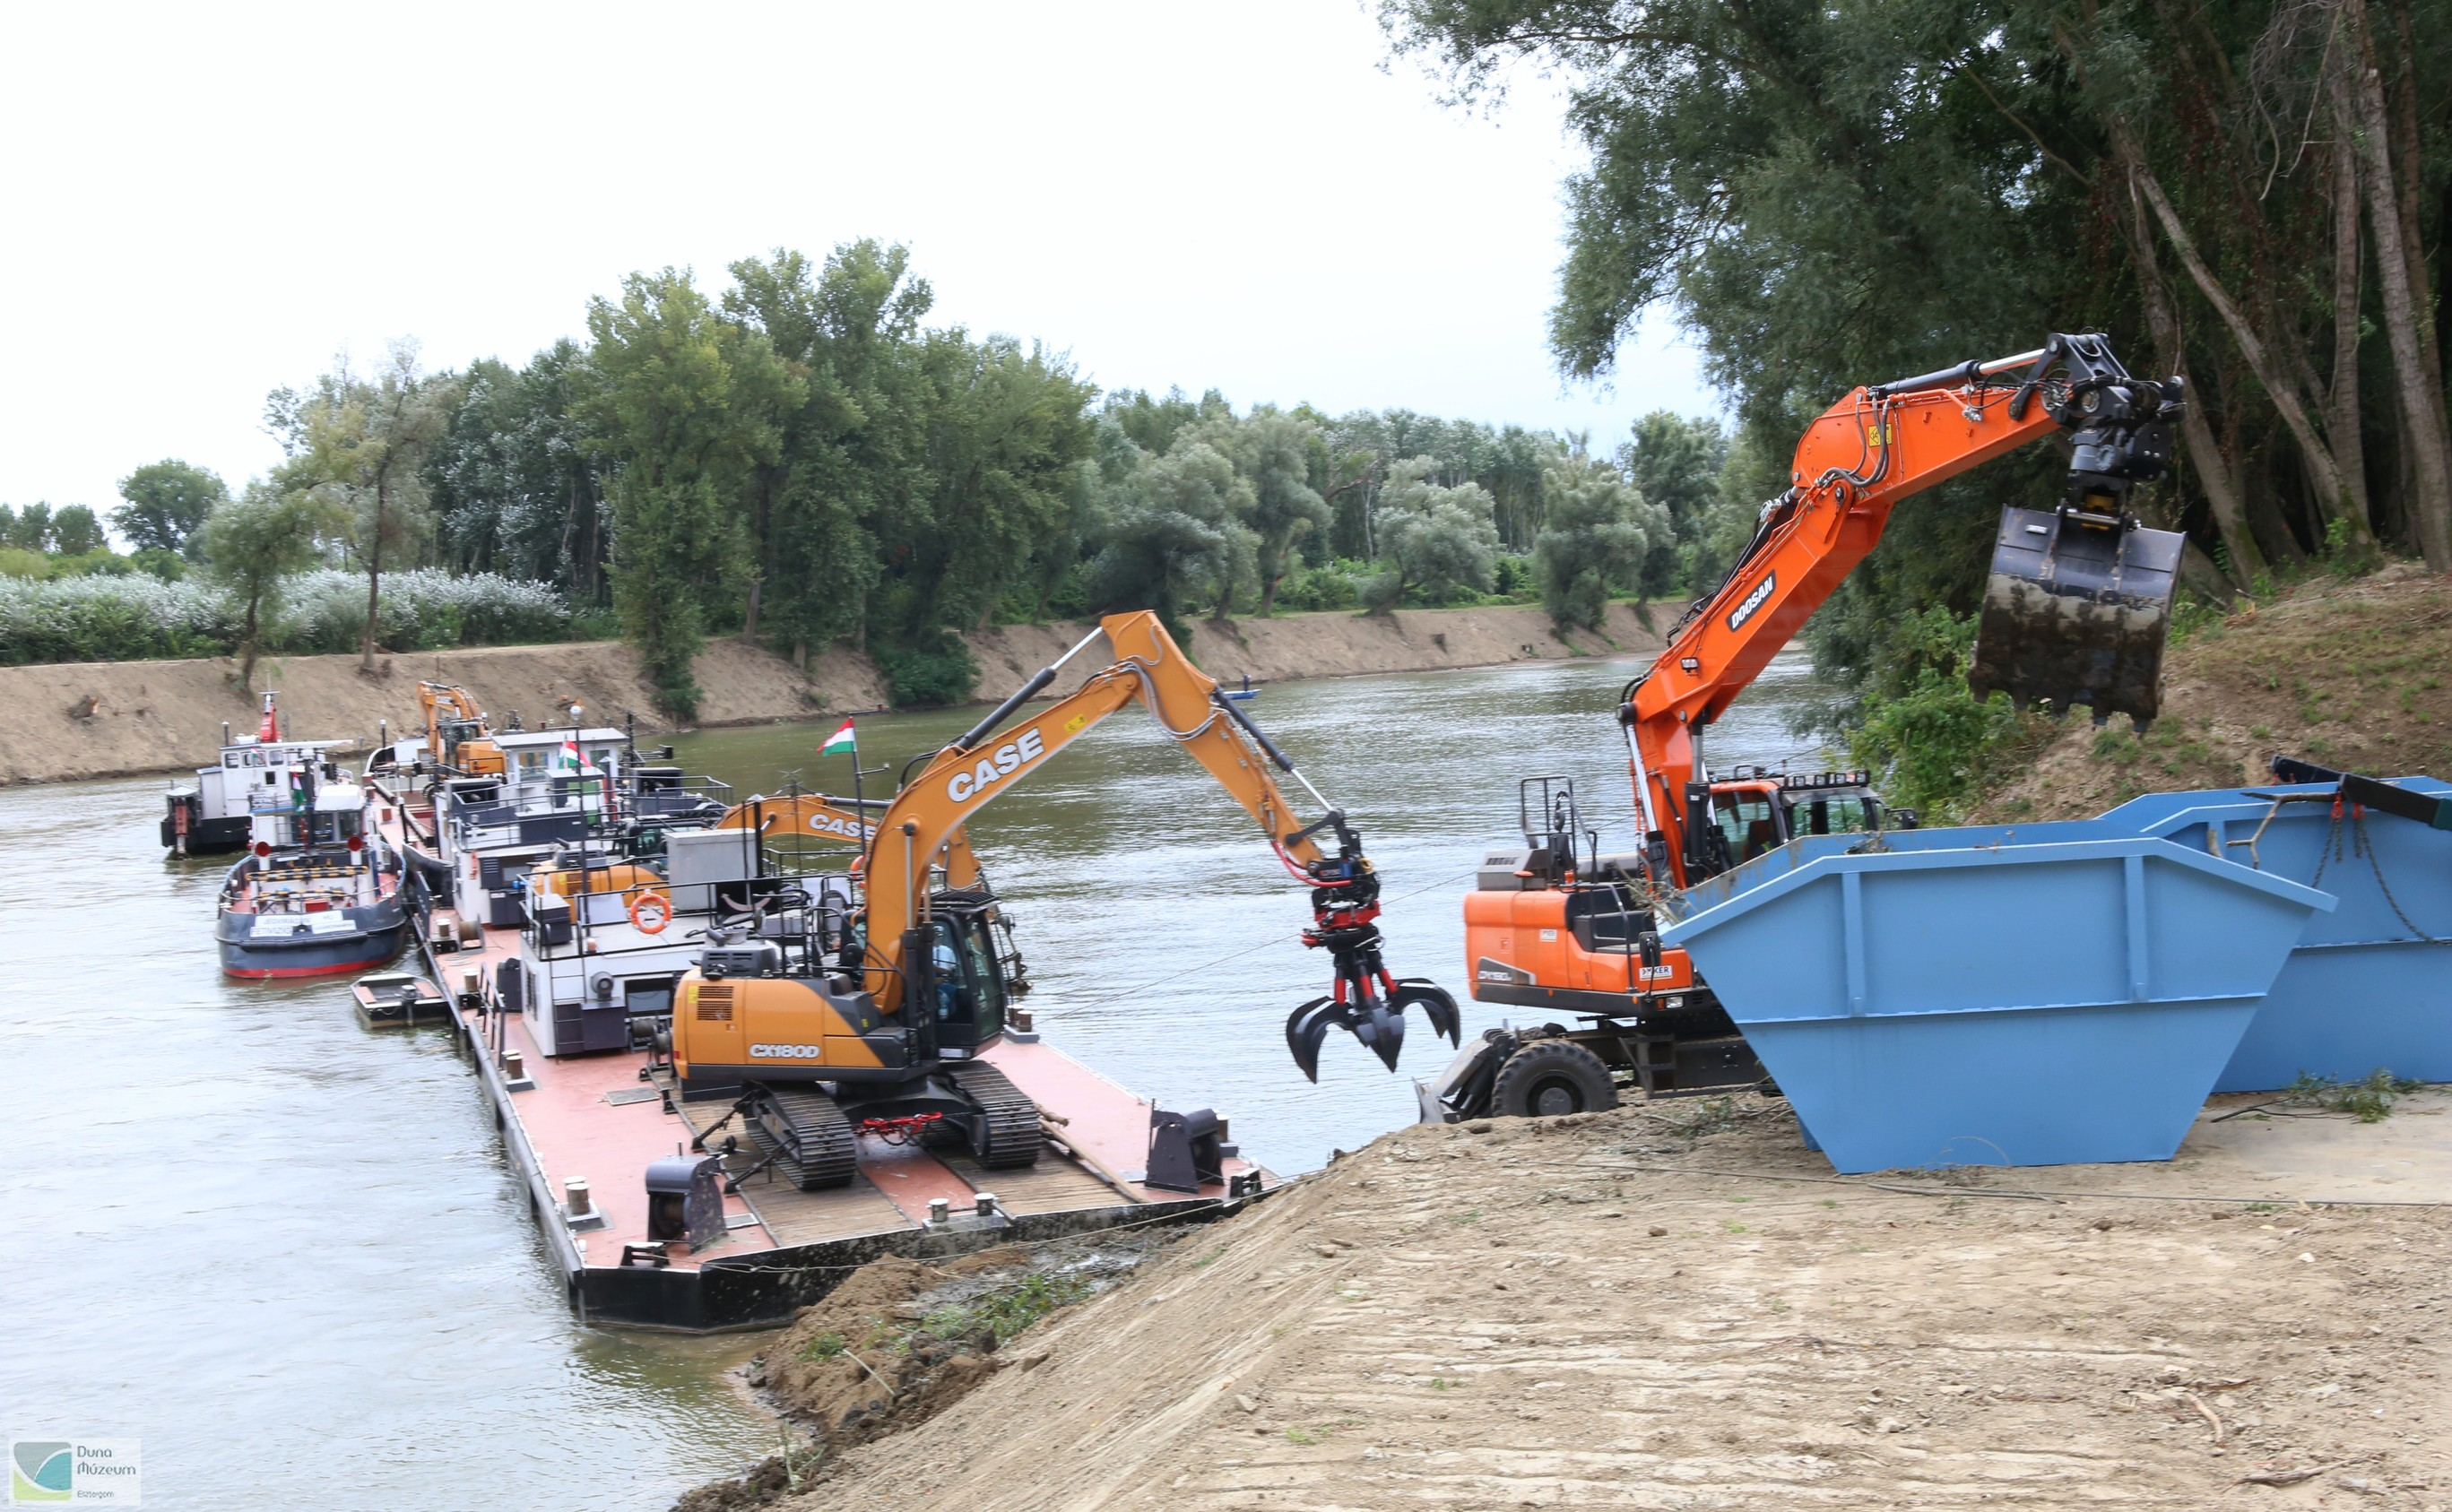 The Zero Waste Project on the Upper Tisza has started